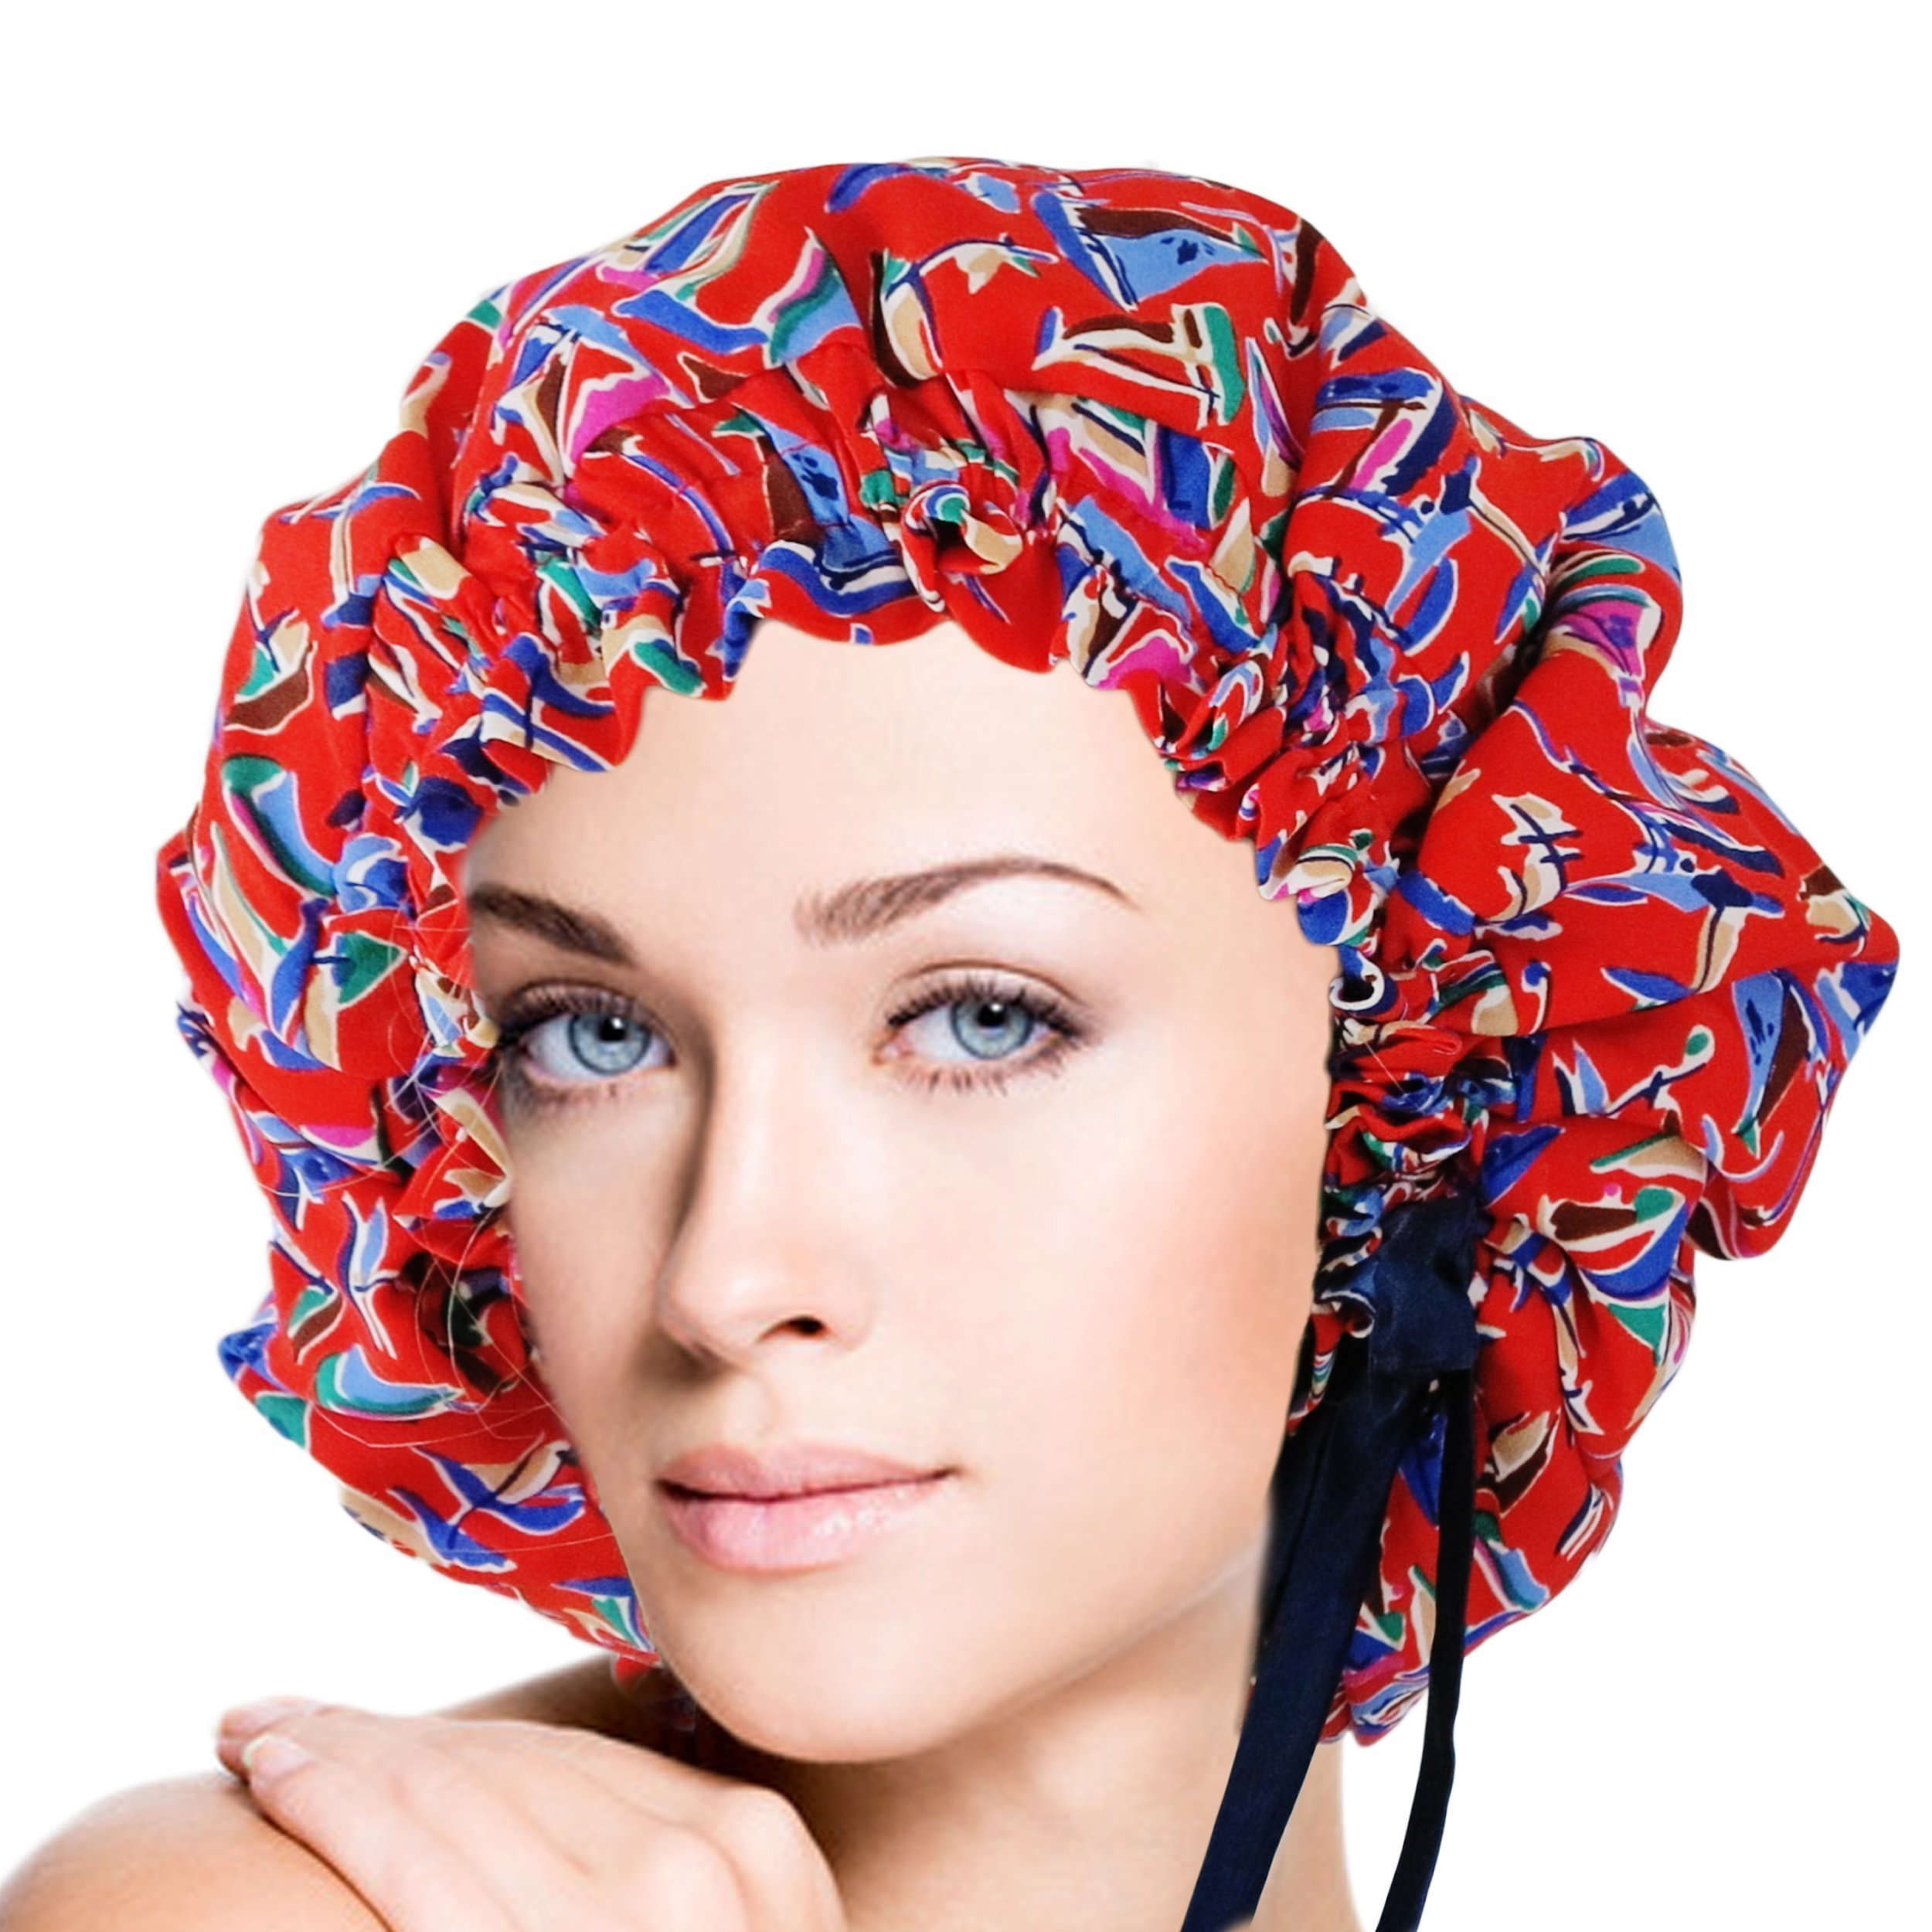 Adjustable Double Layers Sailing Print Silk Sleep Cap Night Cap Head Cover Bonnet for Hair Beauty Fits head sizes: 20.5''-30'' (52-76cm) by vangobeauty